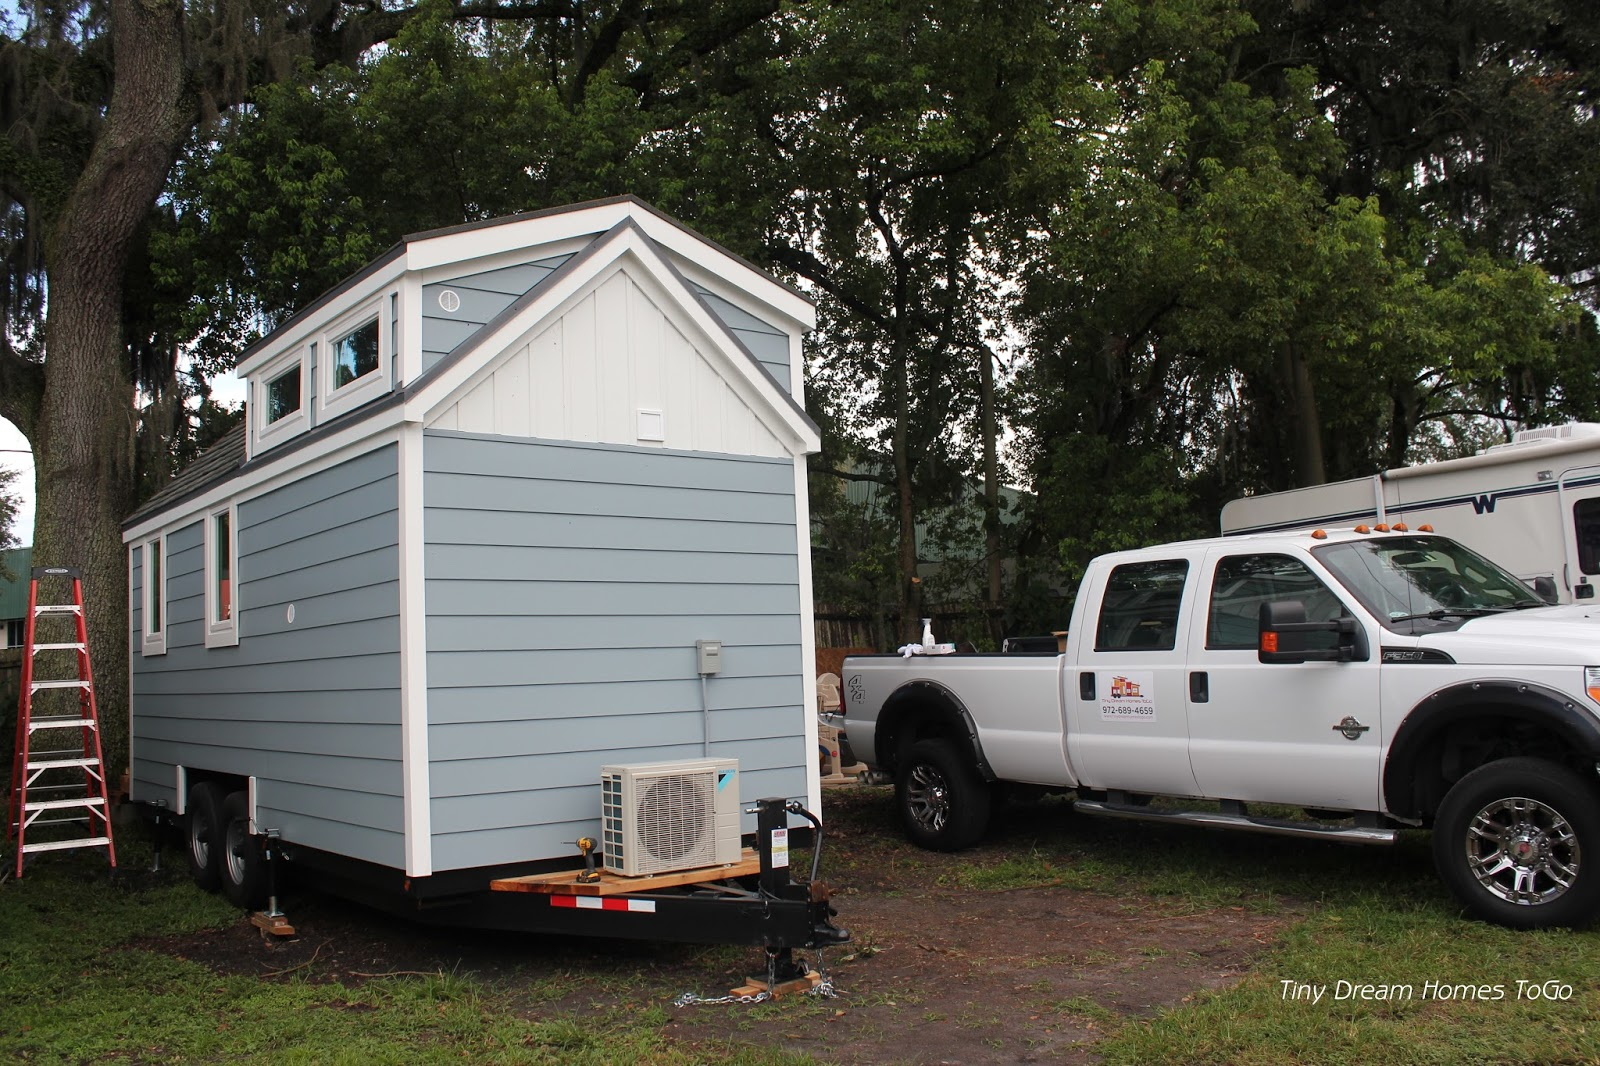 TINY HOUSE TOWN: The Stopover - Florida Edition (232 Sq Ft)